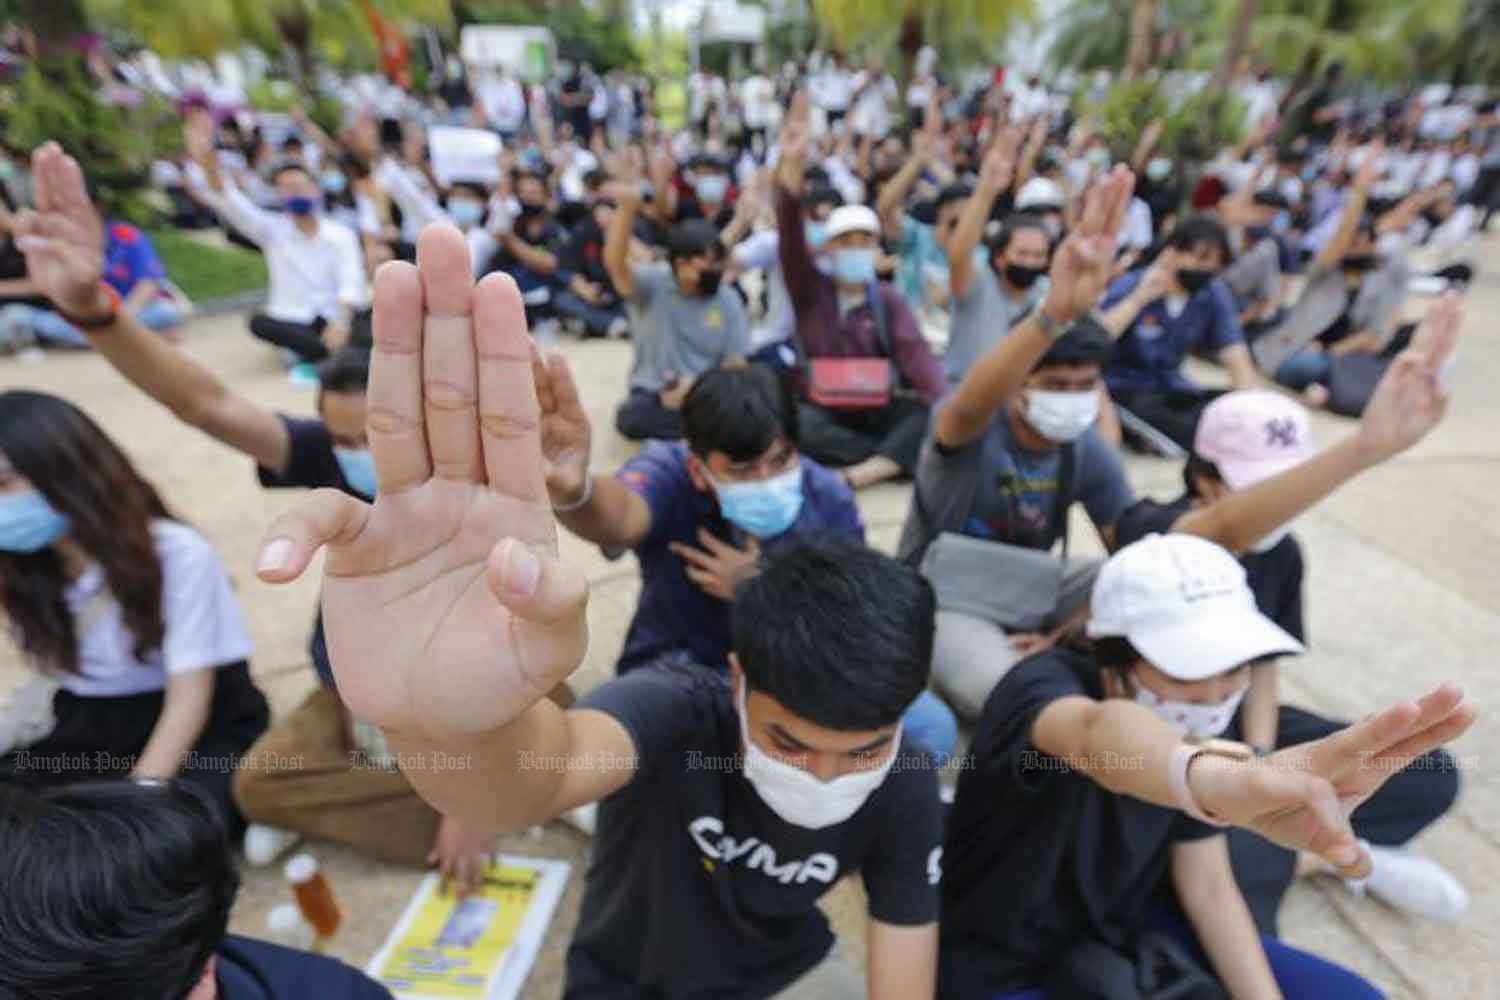 Students from King Mongkut's University of Technology North Bangkok attend a rally at their campus echoing the Free Youth group's and the Student Union of Thailand's calls for the government to dissolve parliament, stop using oppressive laws against political opponents and the amend the charter. (Photo: Pattarapong Chatpattarasill)